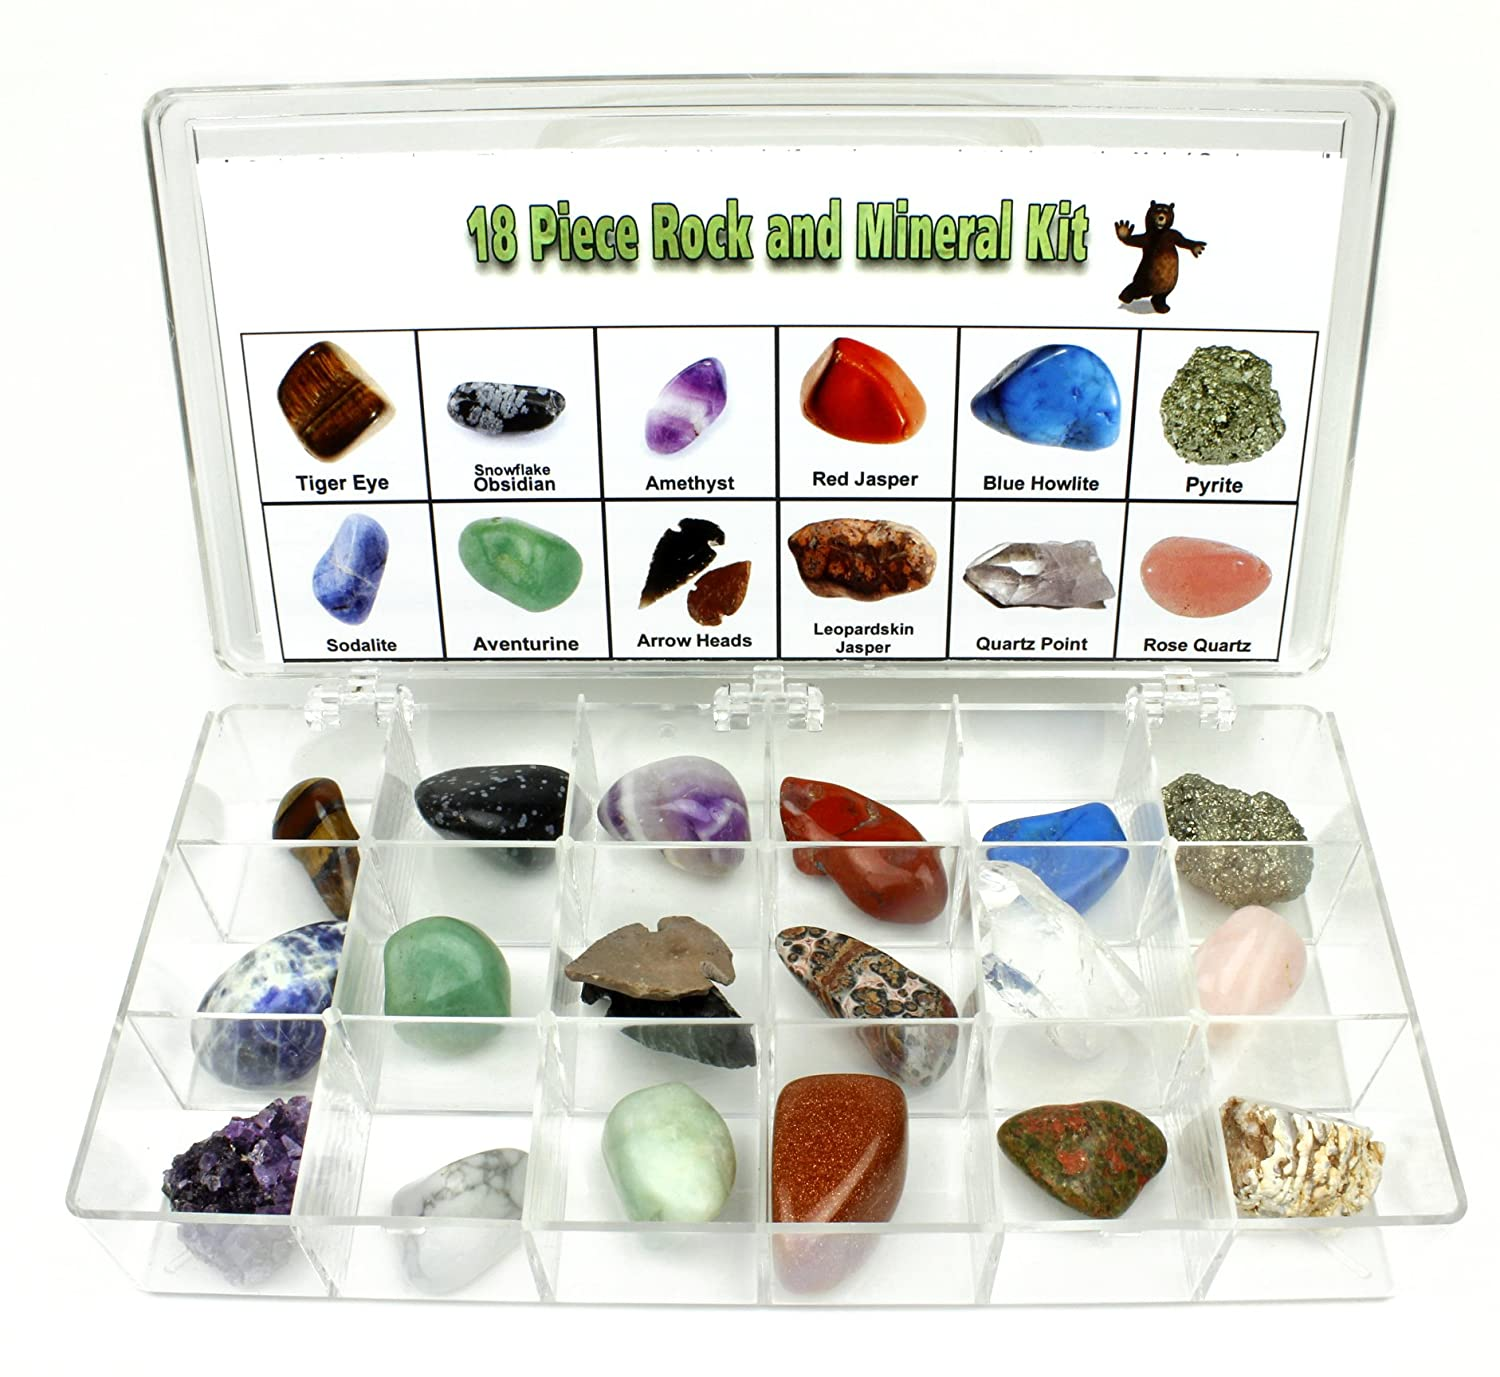 Rock and Mineral Educational Collection in Collection Box -18 Pieces with description sheet and educational information. Limited Edition, Geology Gem Kit for Kids in a Display Case, Dancing Bear brand